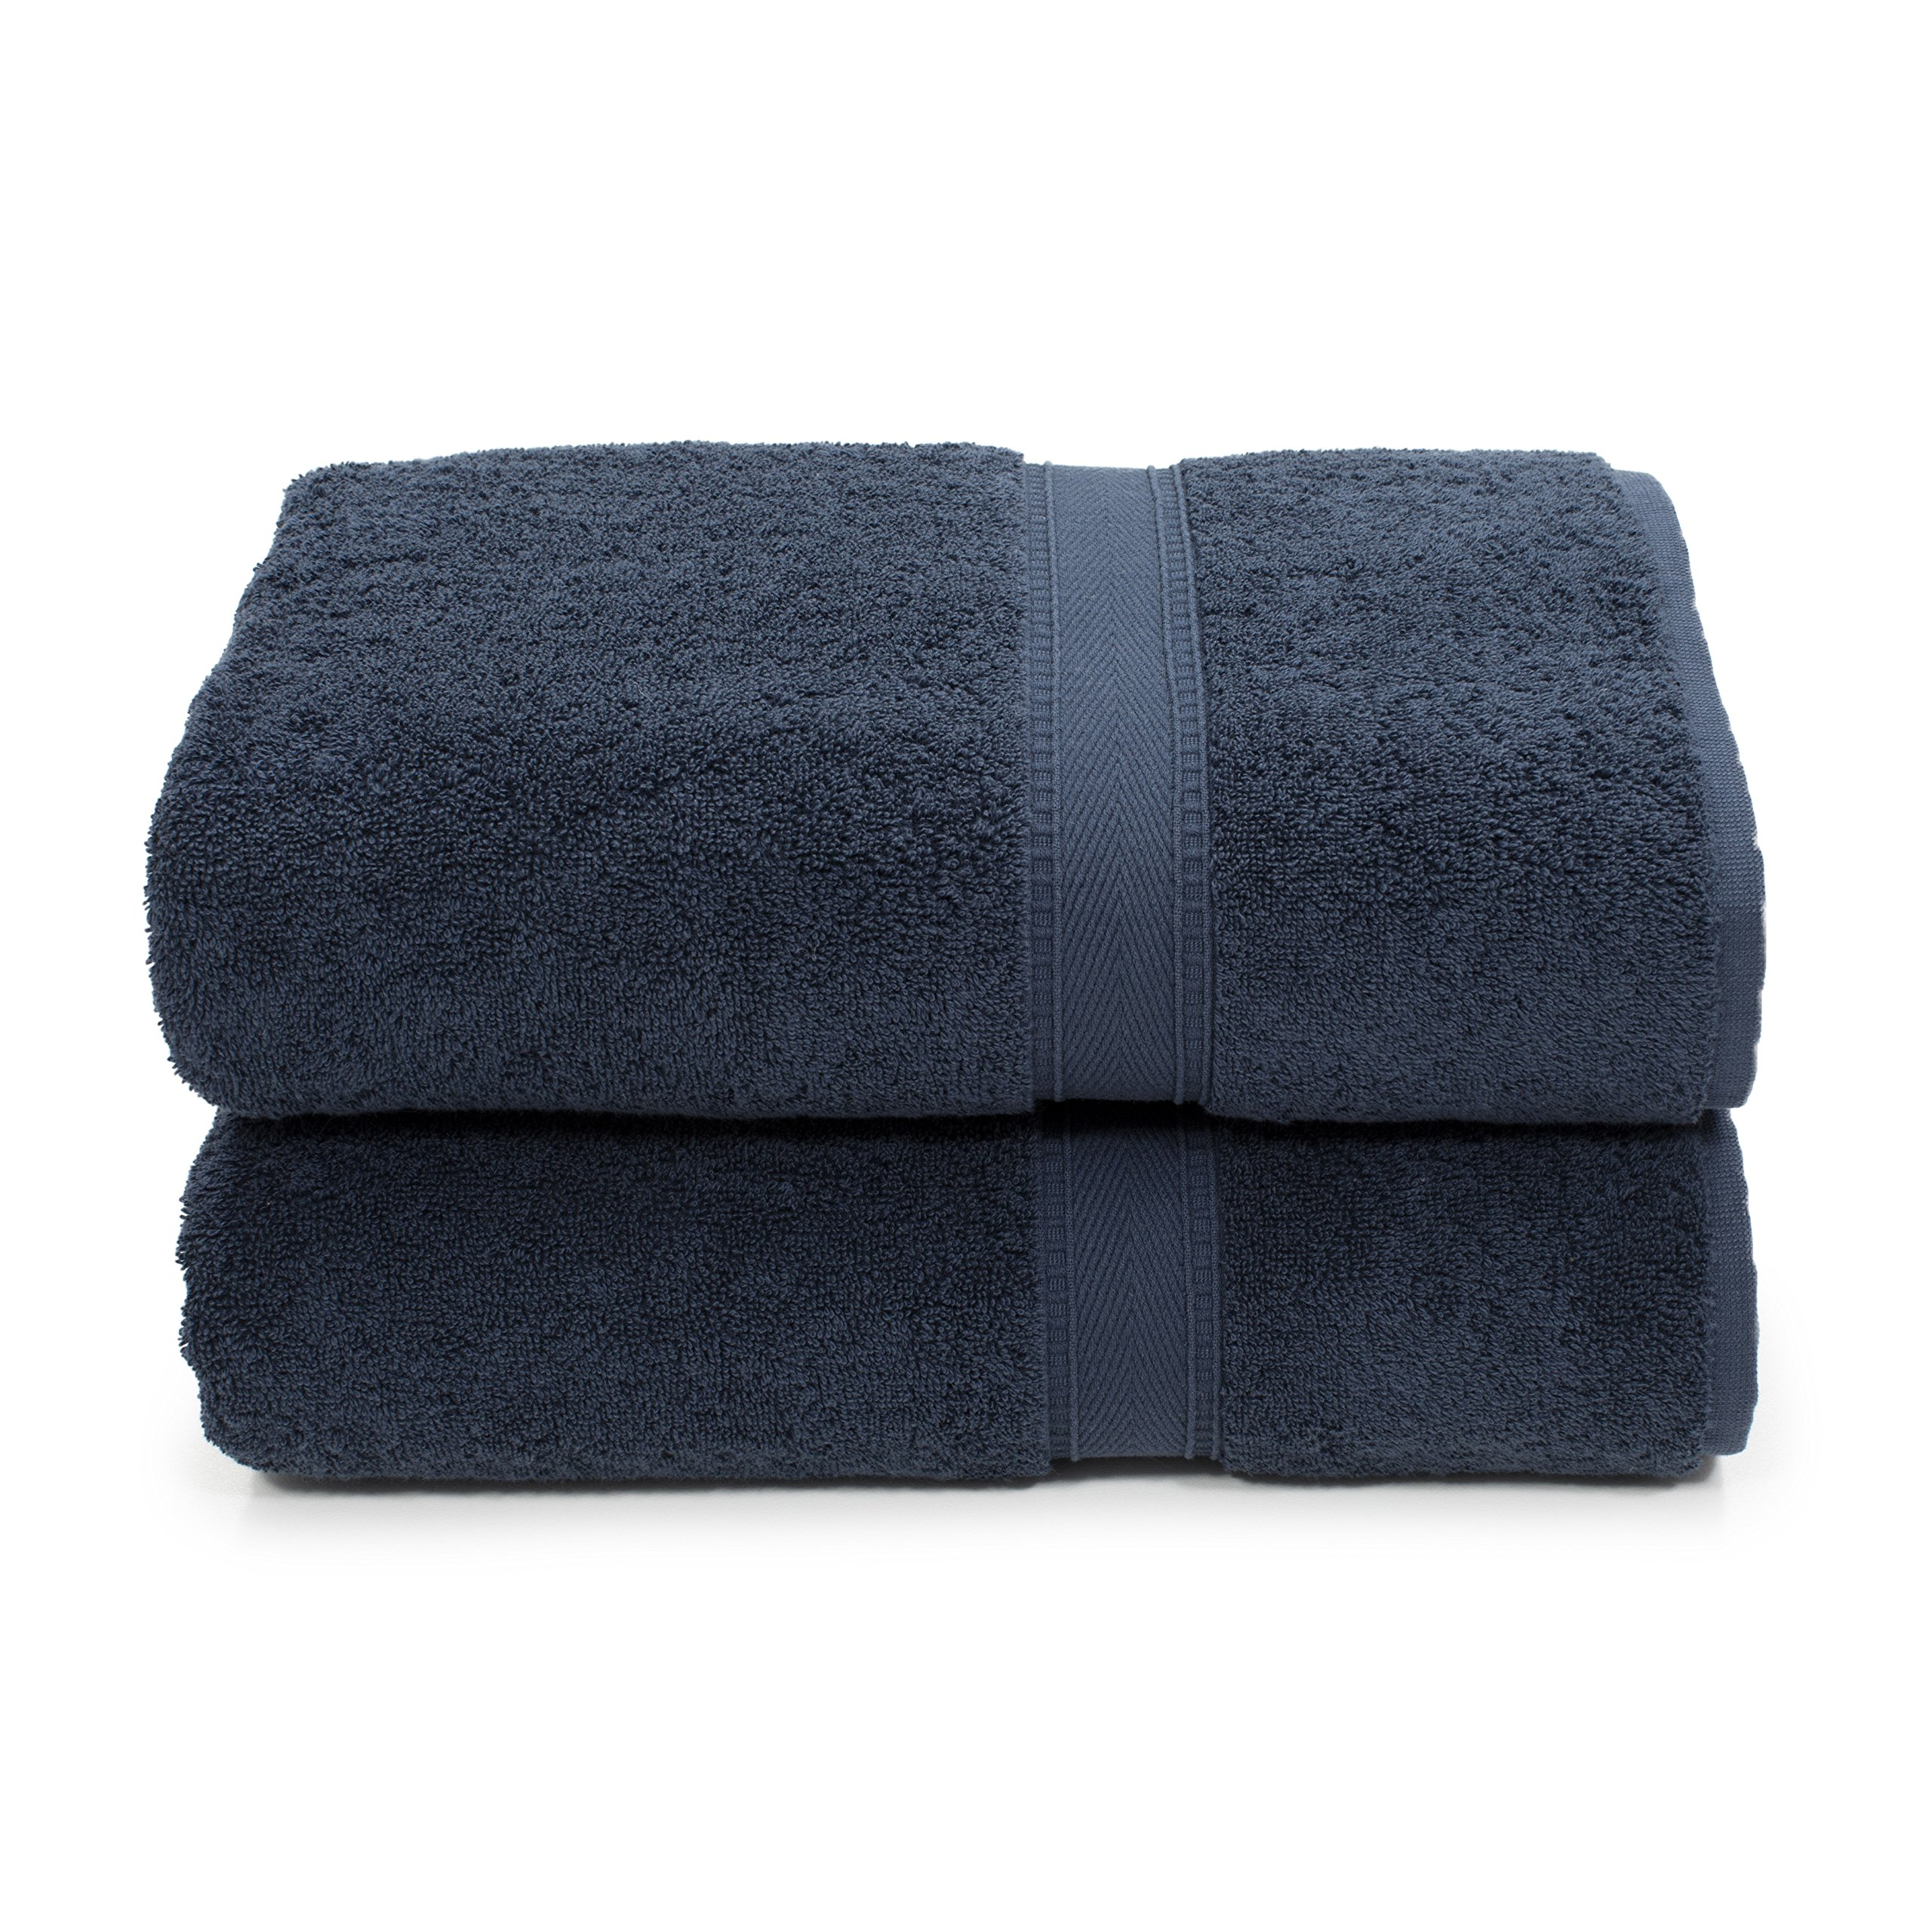 Linum Home Textiles SN50-2BT Bath Towel, Navy